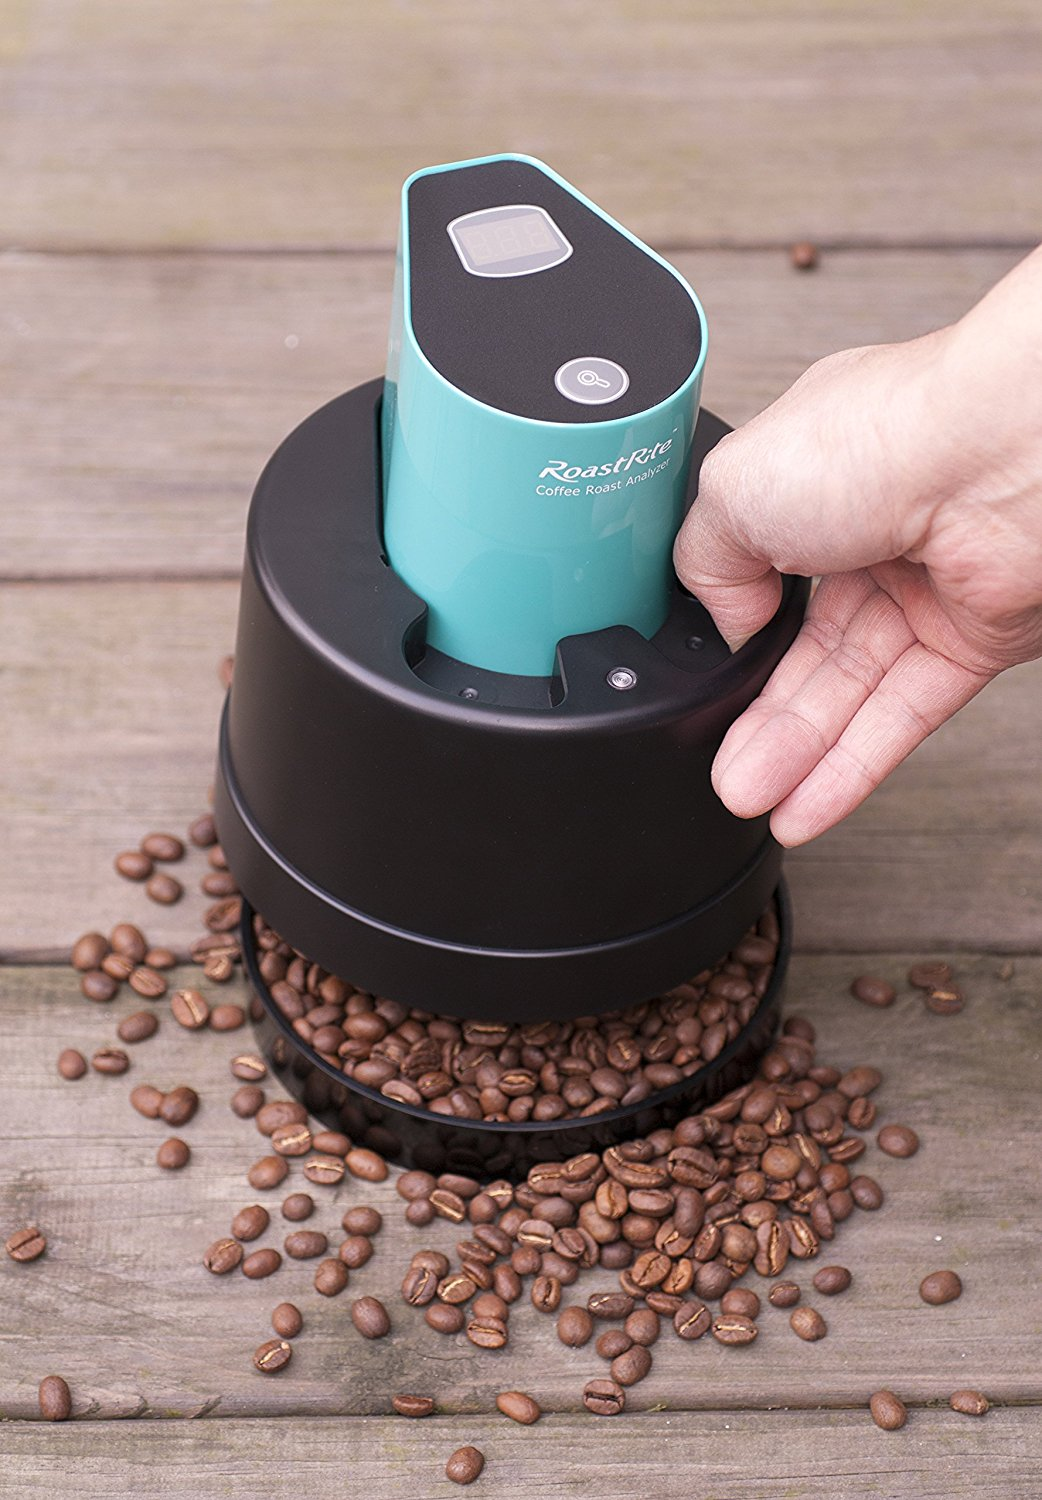 Coffee Roast Degree Analyzer and coffee beans